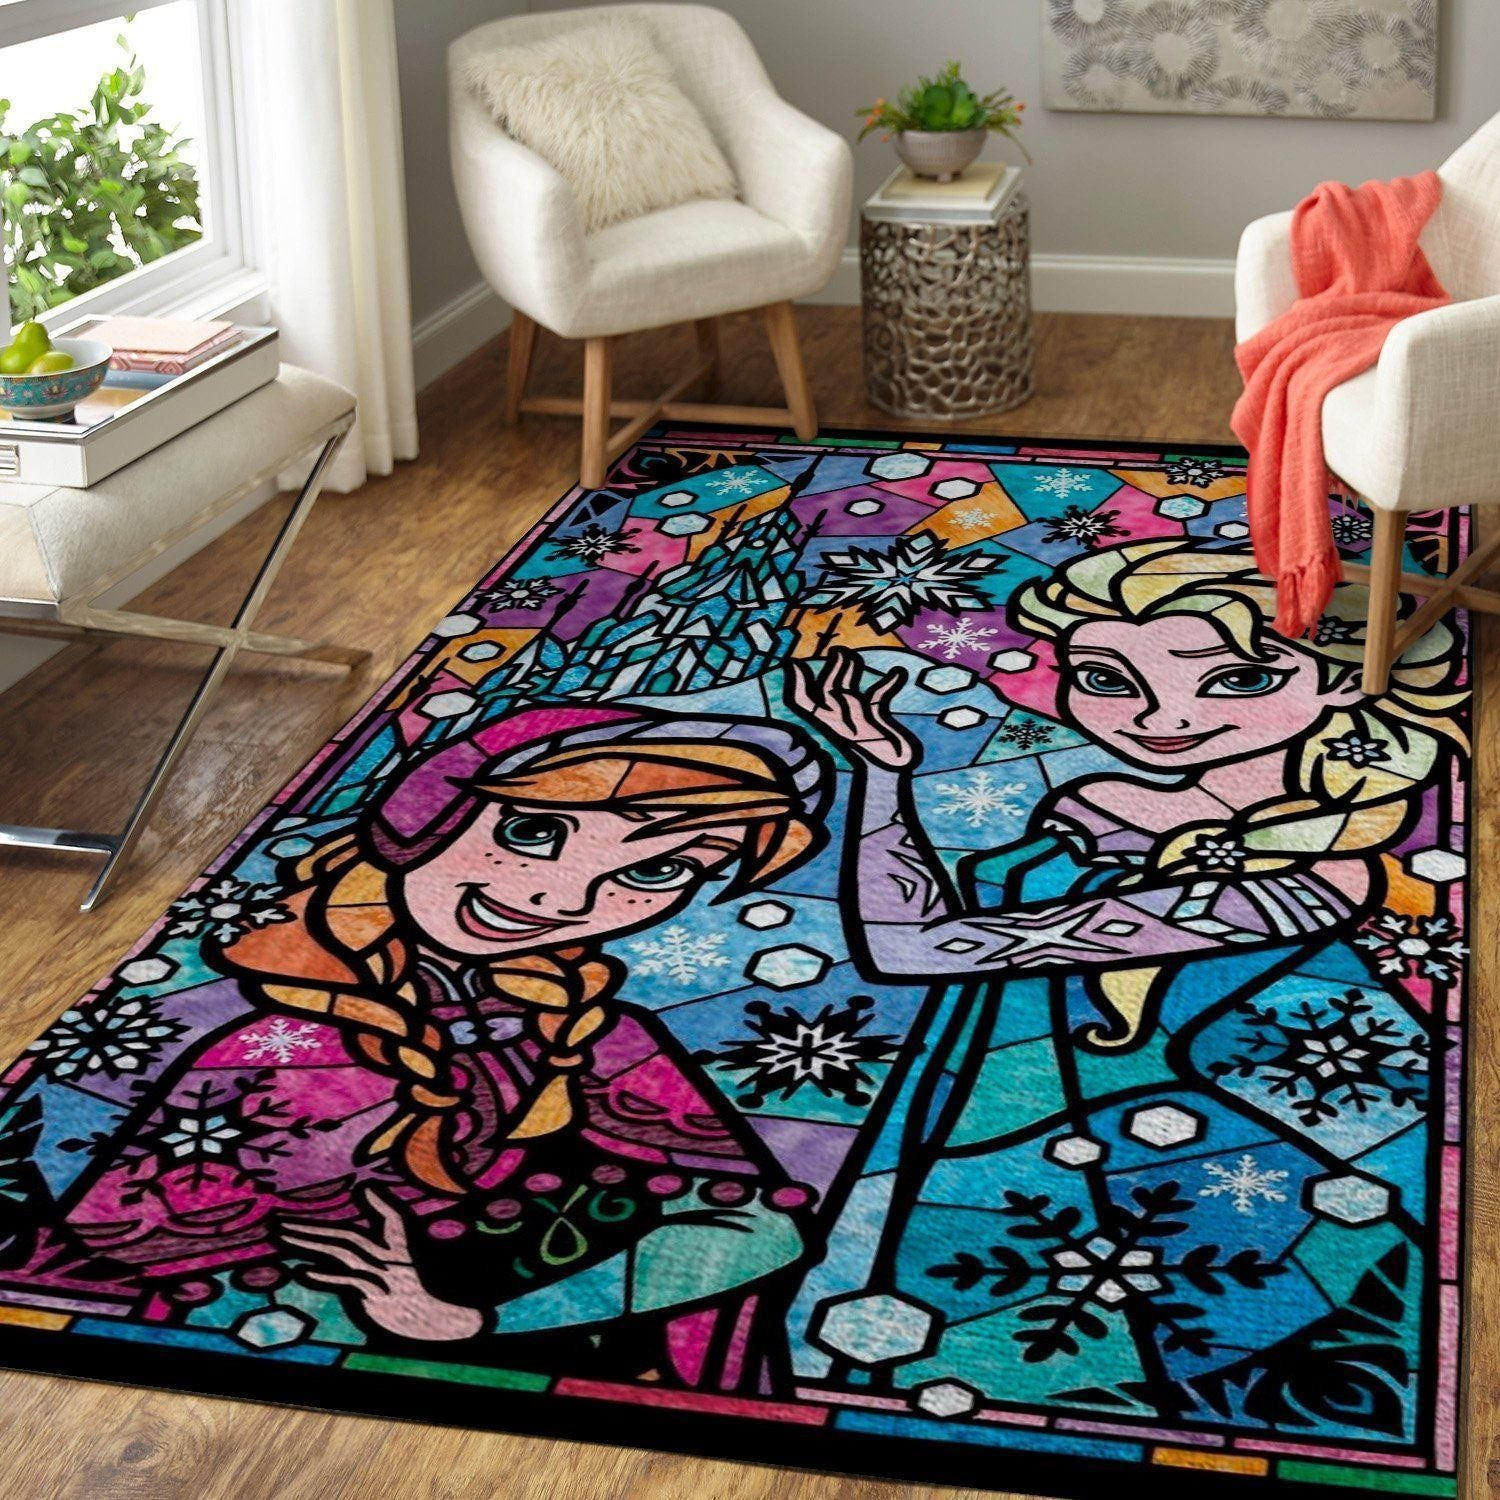 Elsa & Anna - Frozen, Disney Princess Area Rugs 19102120